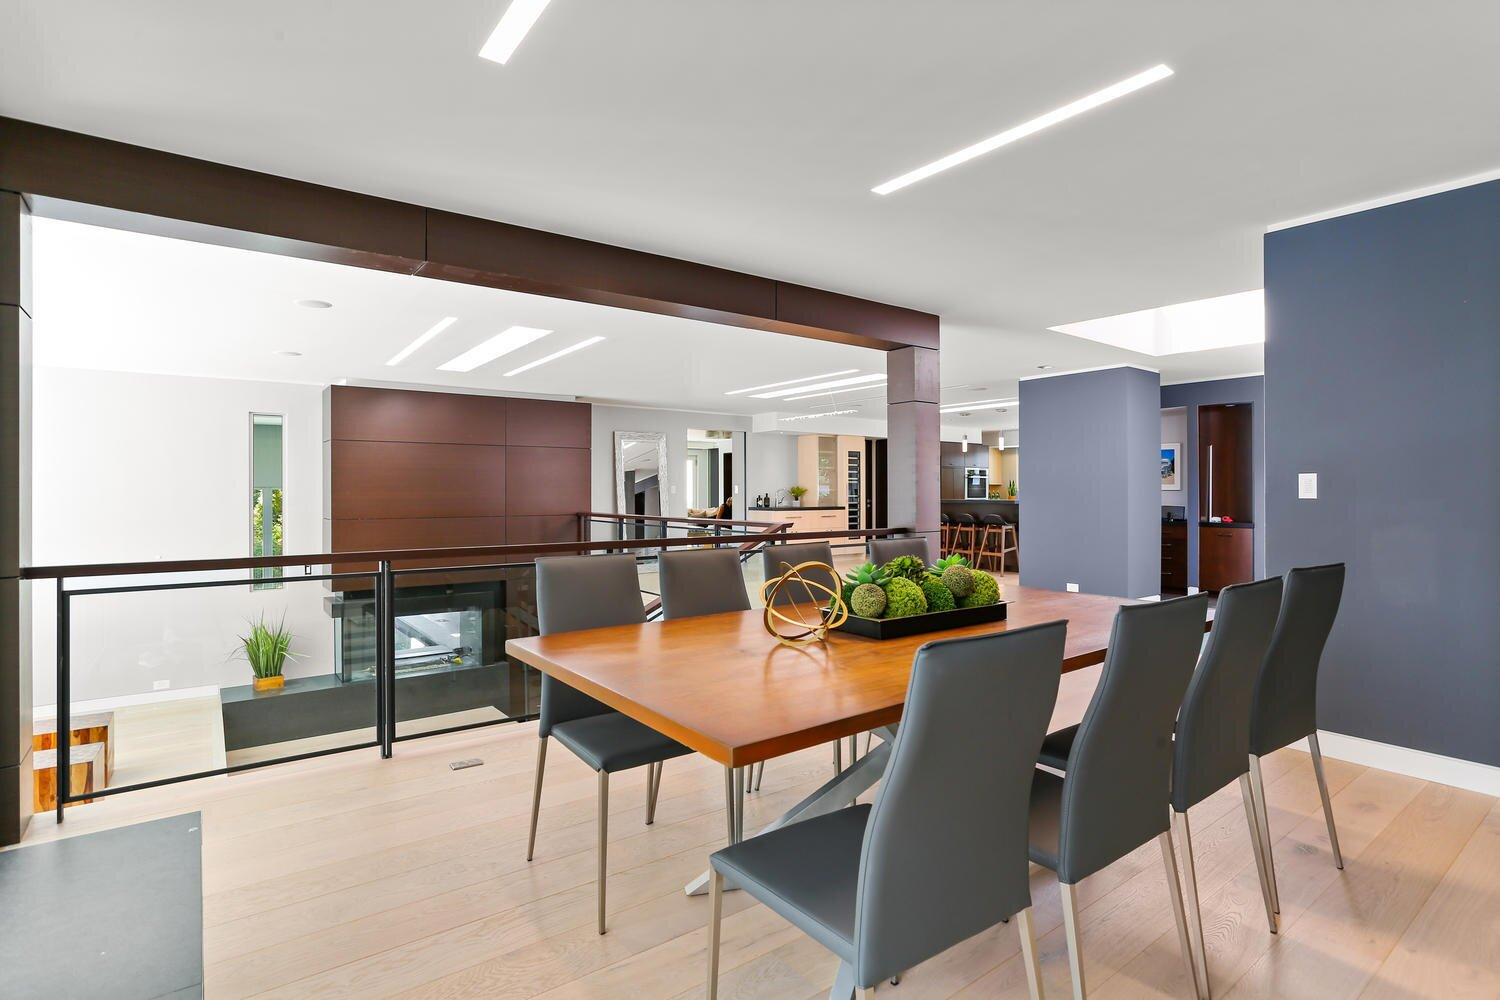 Dining Room, Two-Sided Fireplace, Ceiling Lighting, Gas Burning Fireplace, and Recessed Lighting Dining Room overlooking leveled living area  A Gut Renovated MidCentury Modern Green Energy Home for Luxury Winter Living for $4.65m